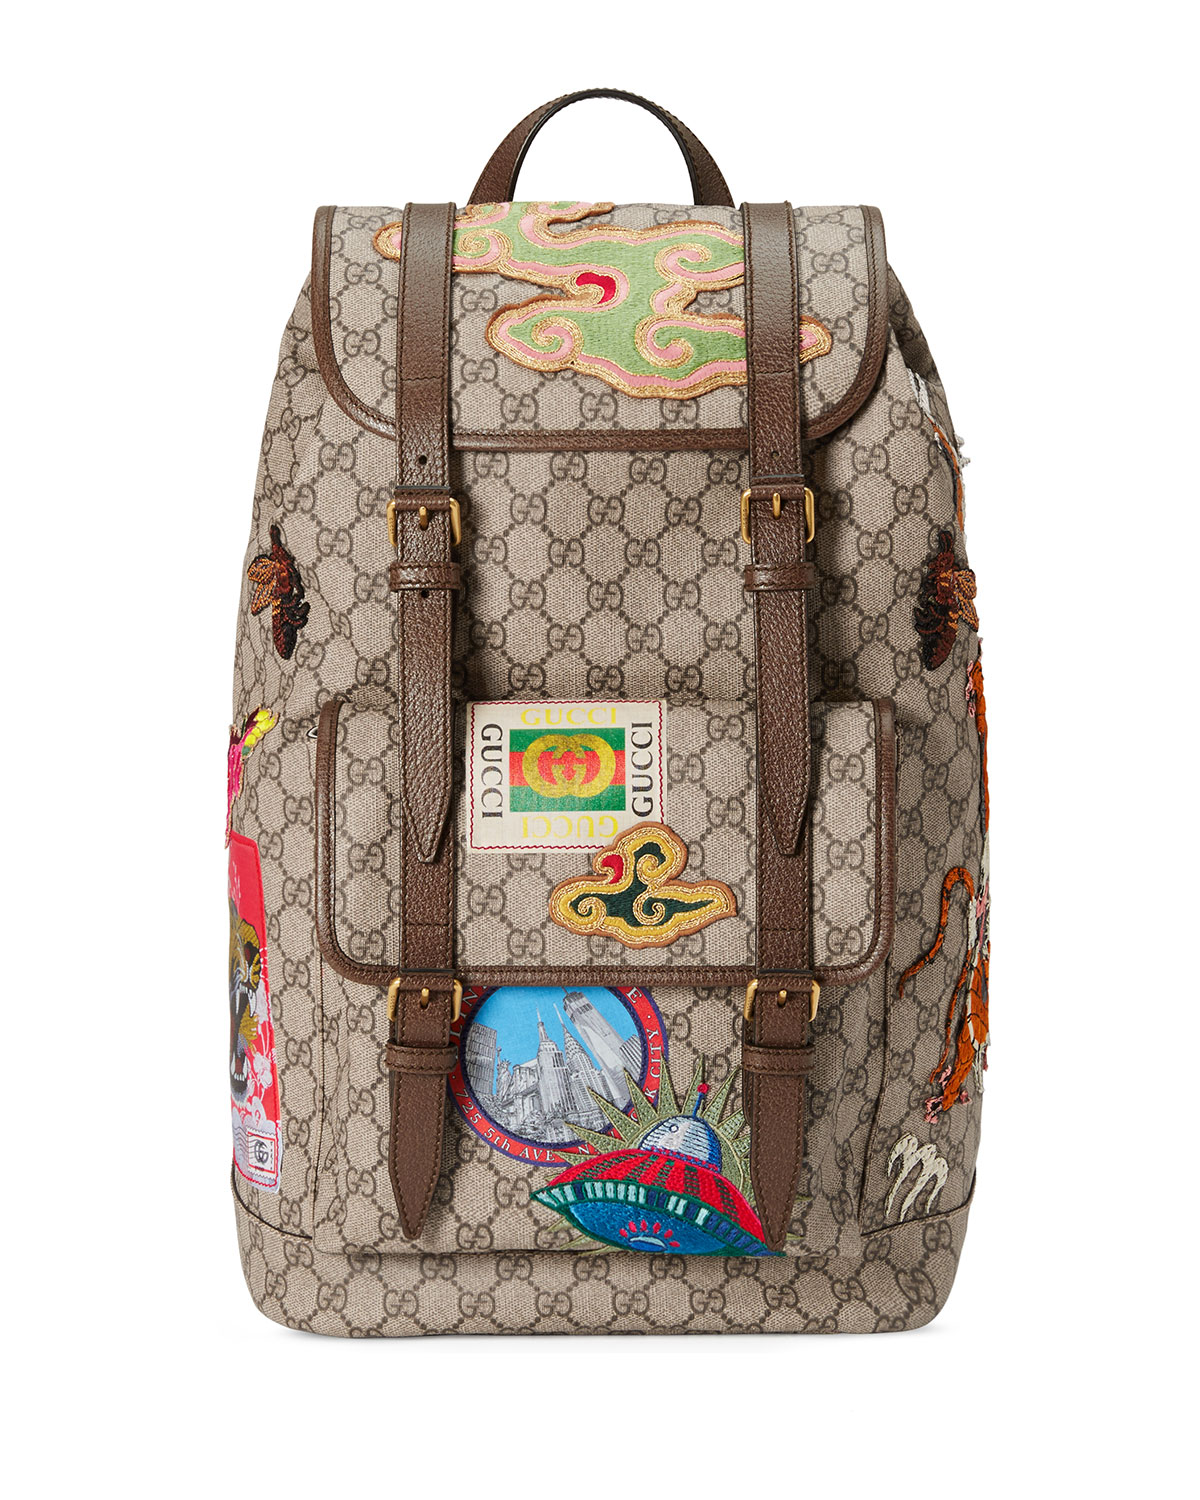 0a60cd0c49fb Gucci Gucci Courier Soft GG Supreme Backpack | Neiman Marcus